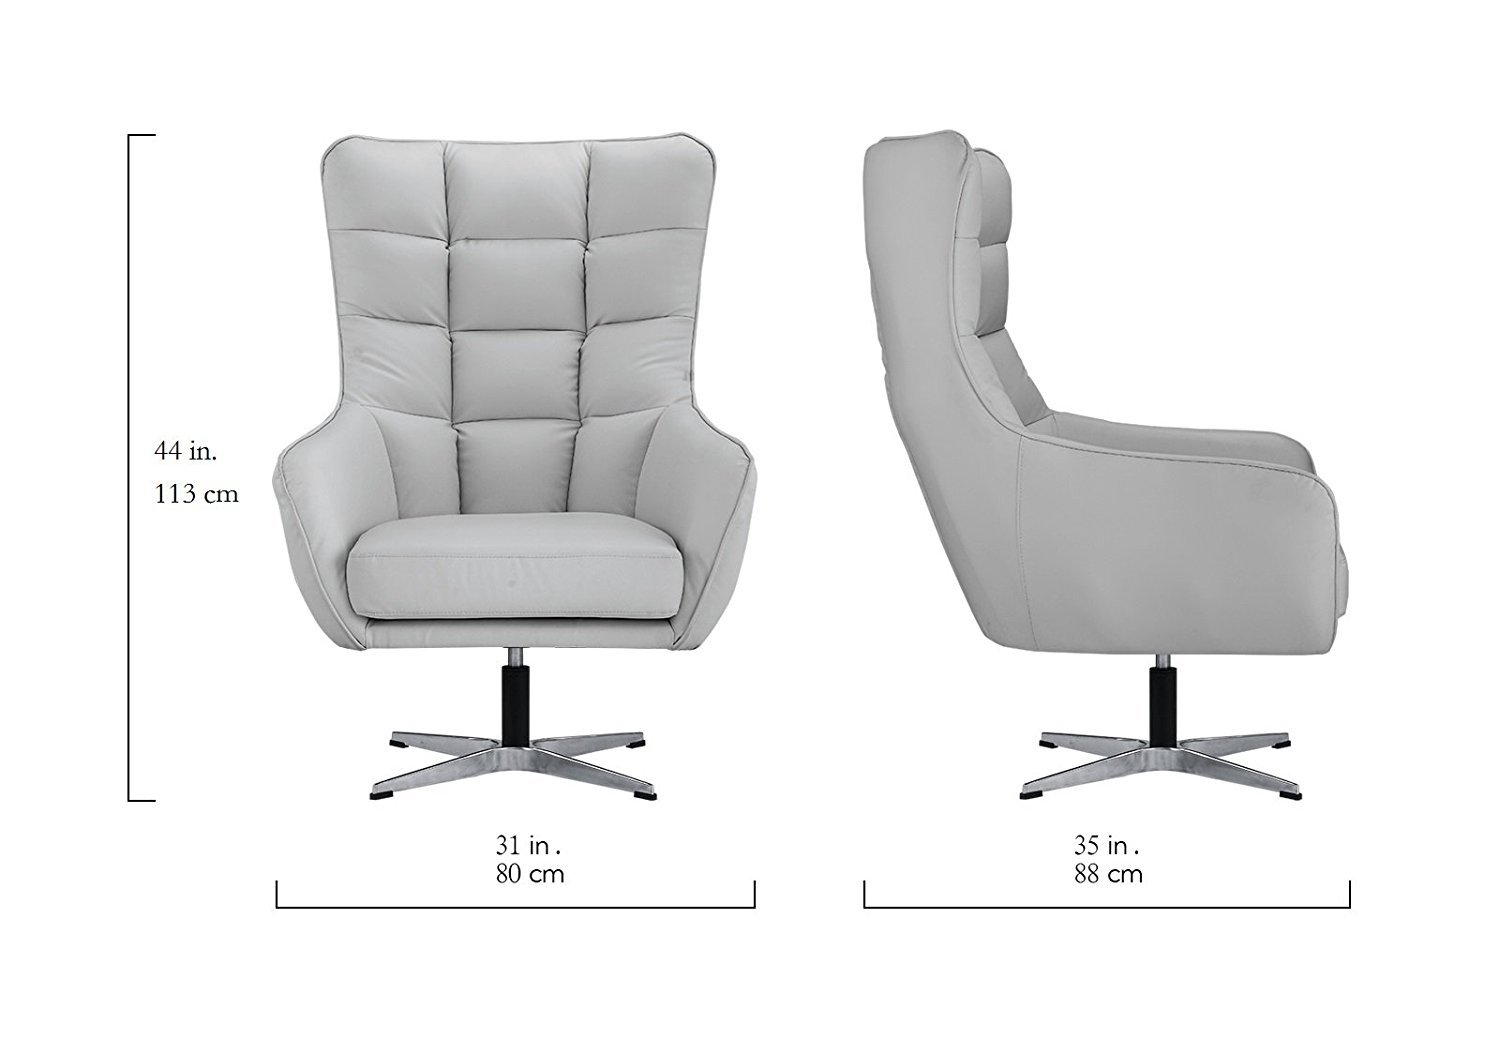 hight resolution of details about living room bonded leather fabric tufted armchair home office chair light grey